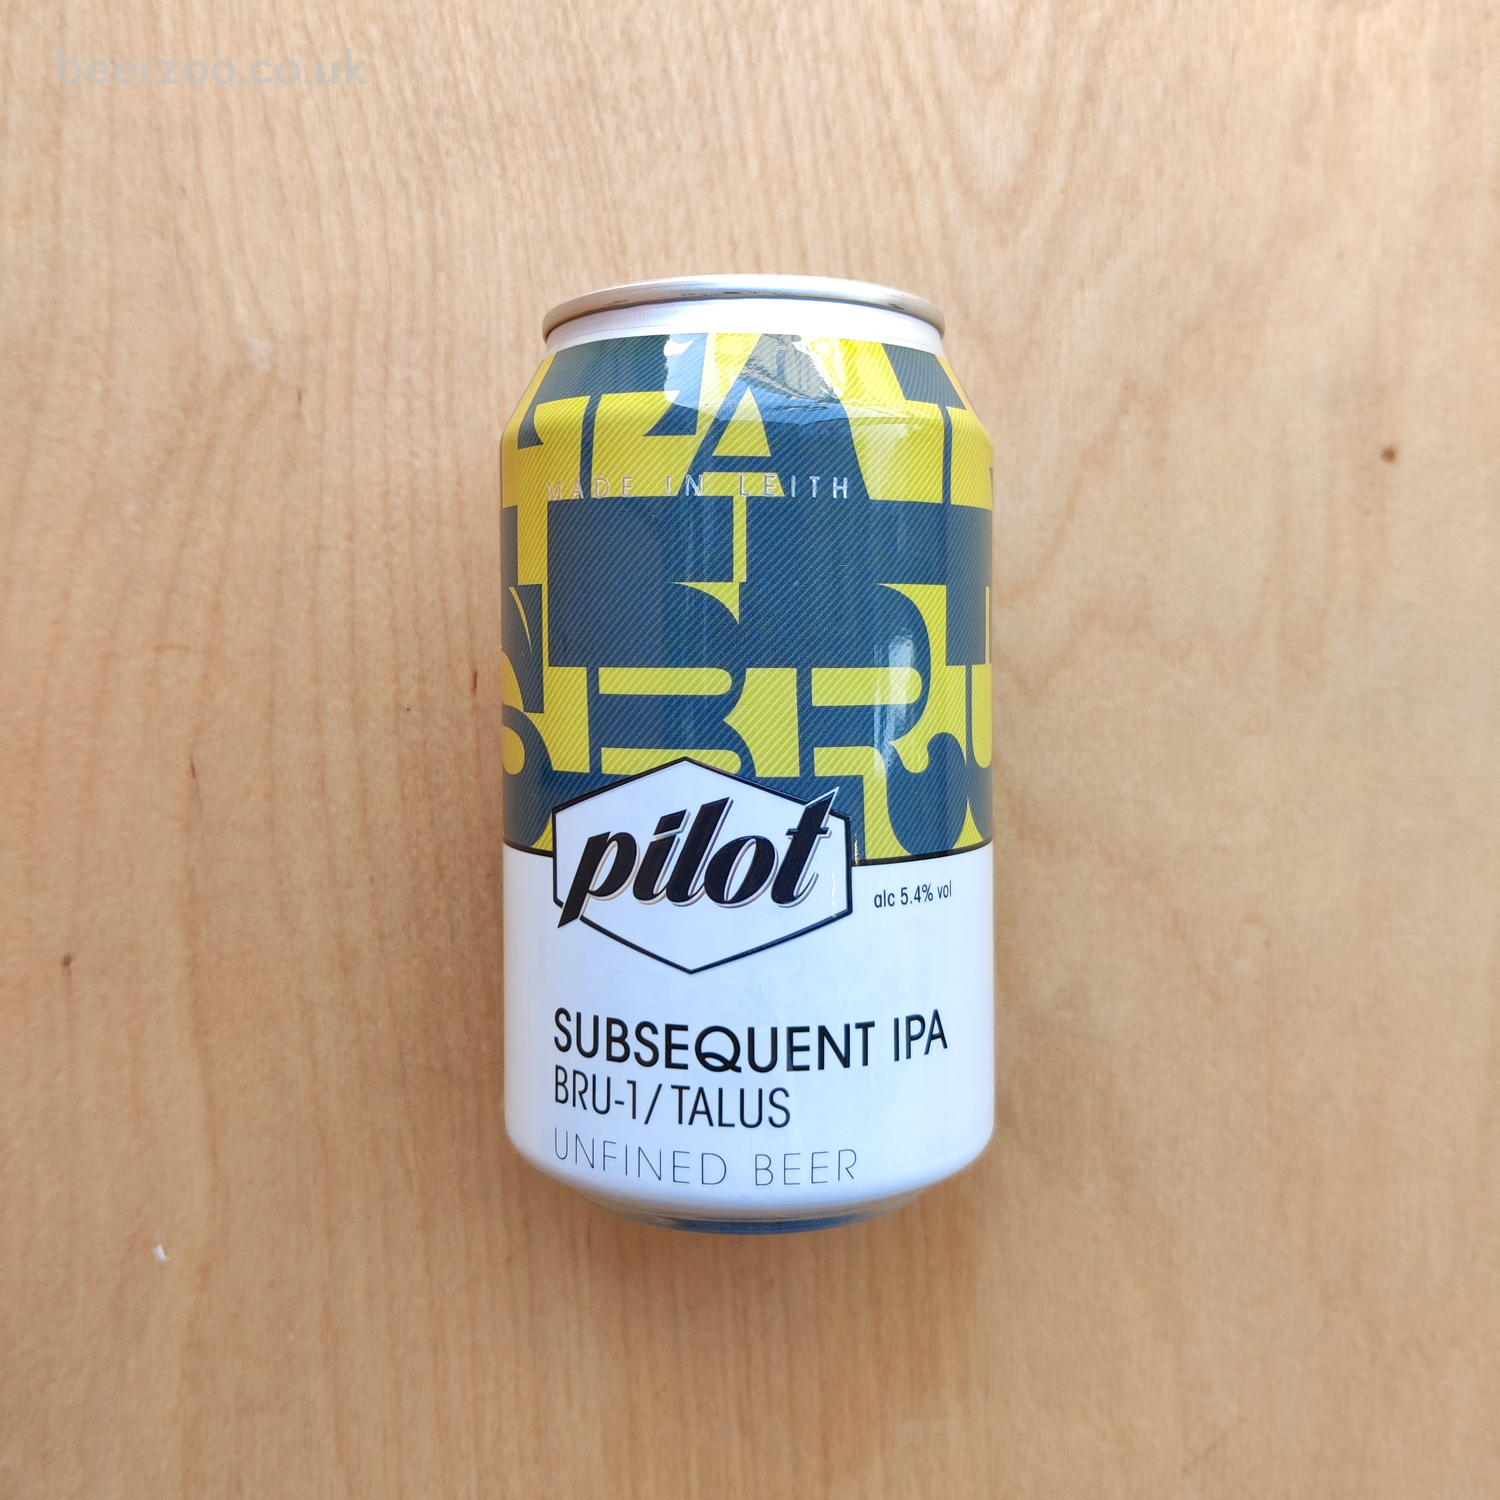 Pilot - Subsequent IPA 5.4% (330ml)